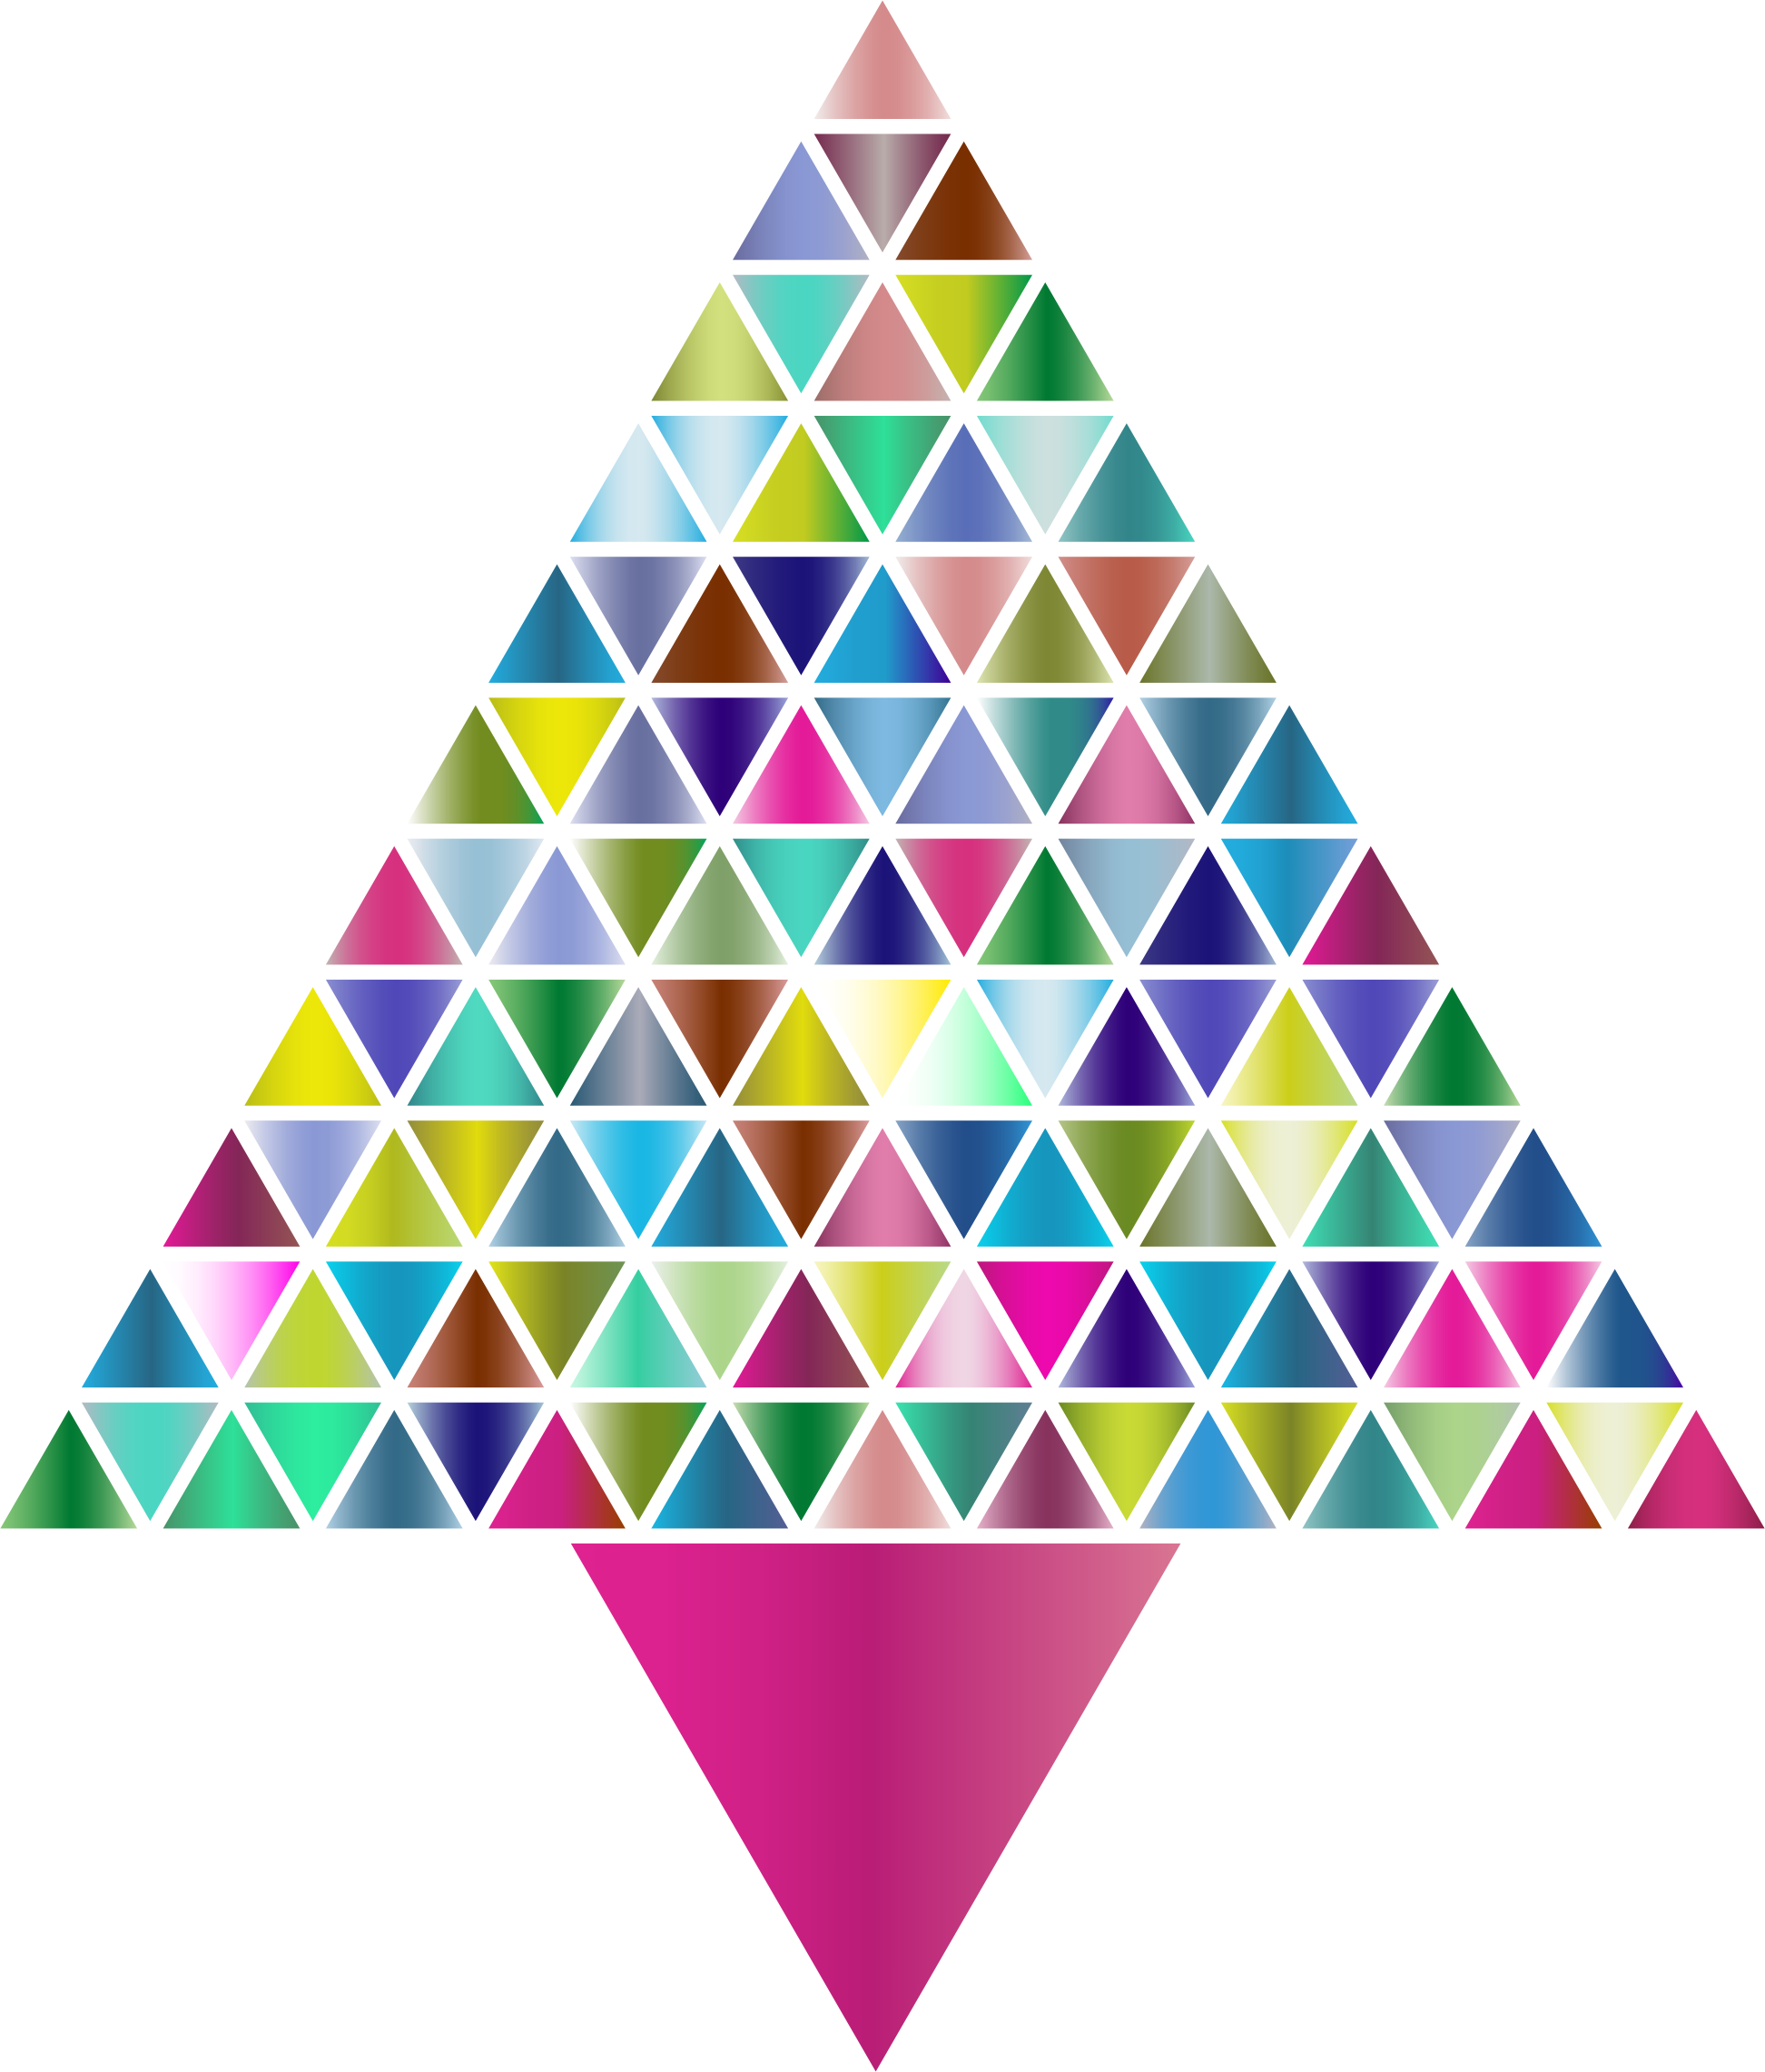 Prismatic Abstract Triangular Christmas Tree 3 by GDJ